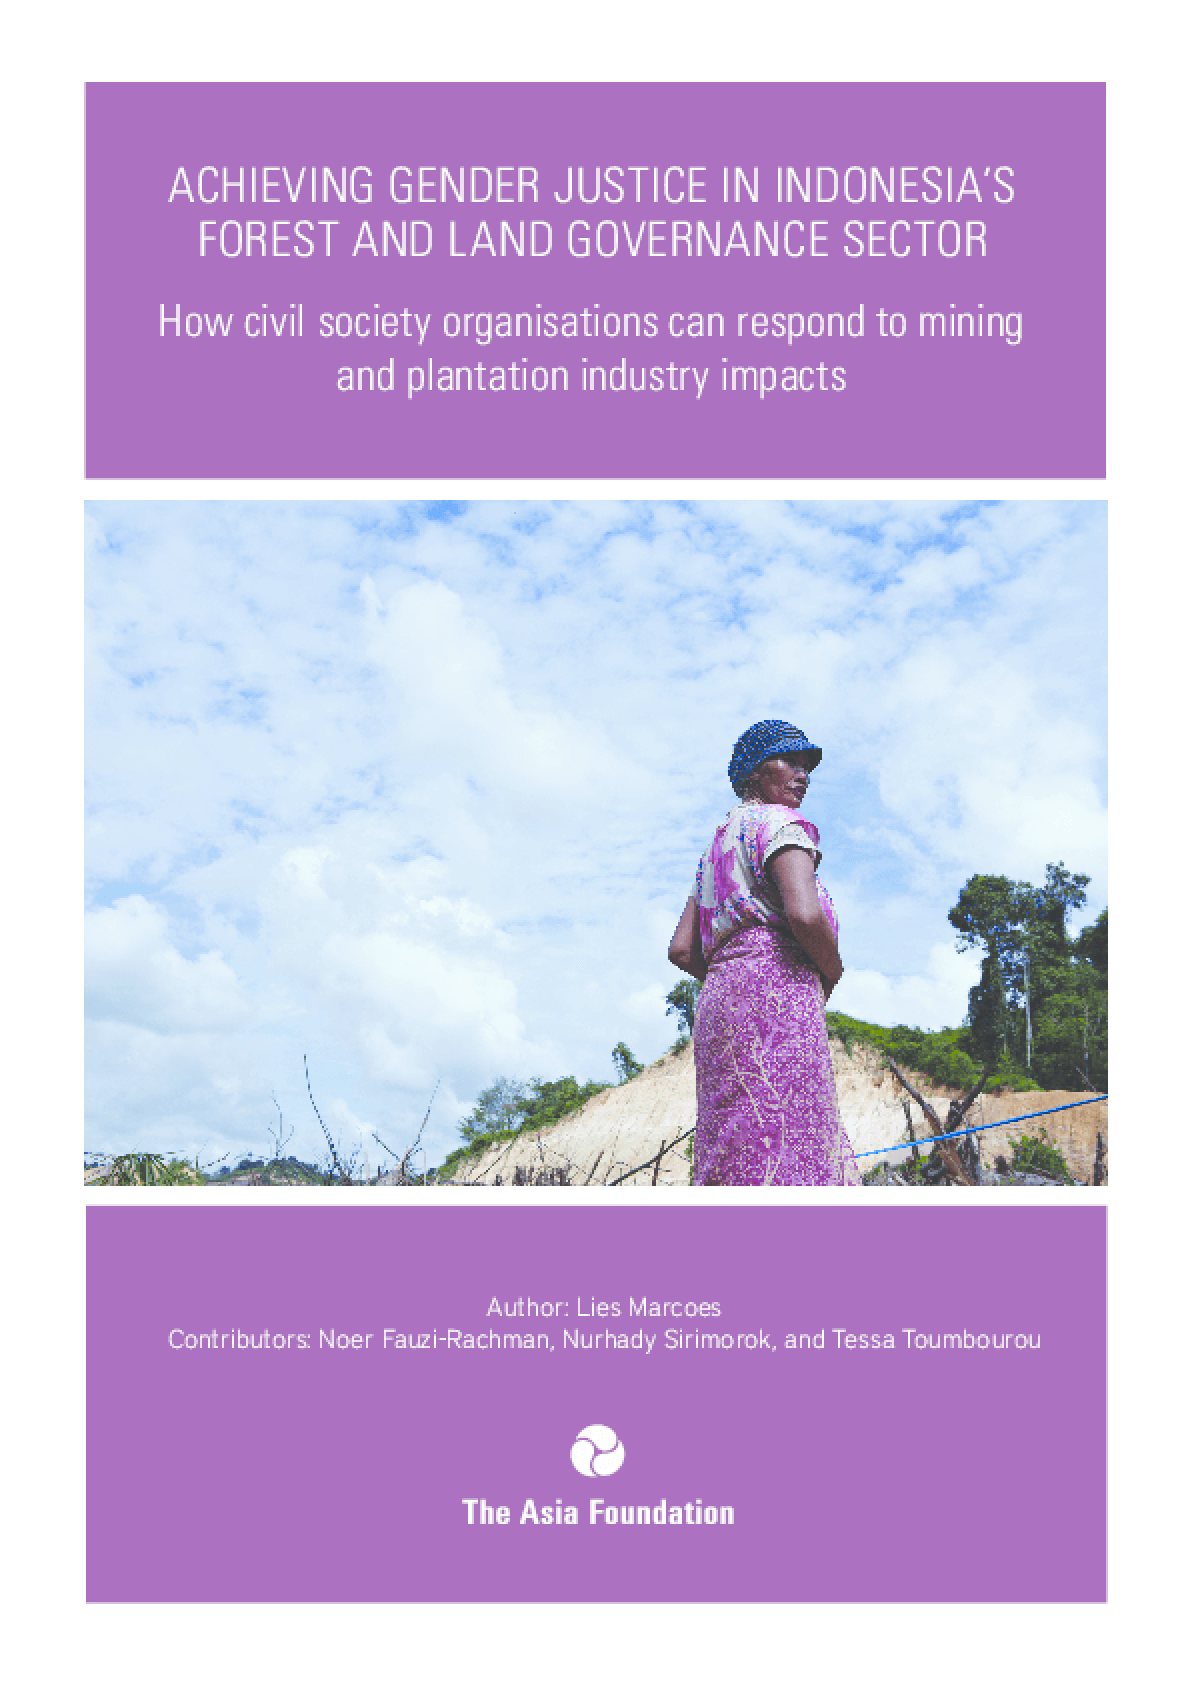 Achieving Gender Justice in Indonesia's Forest and Land Governance Sector: How Civil Society Organizations Can Respond to Mining and Plantation Industry Impacts